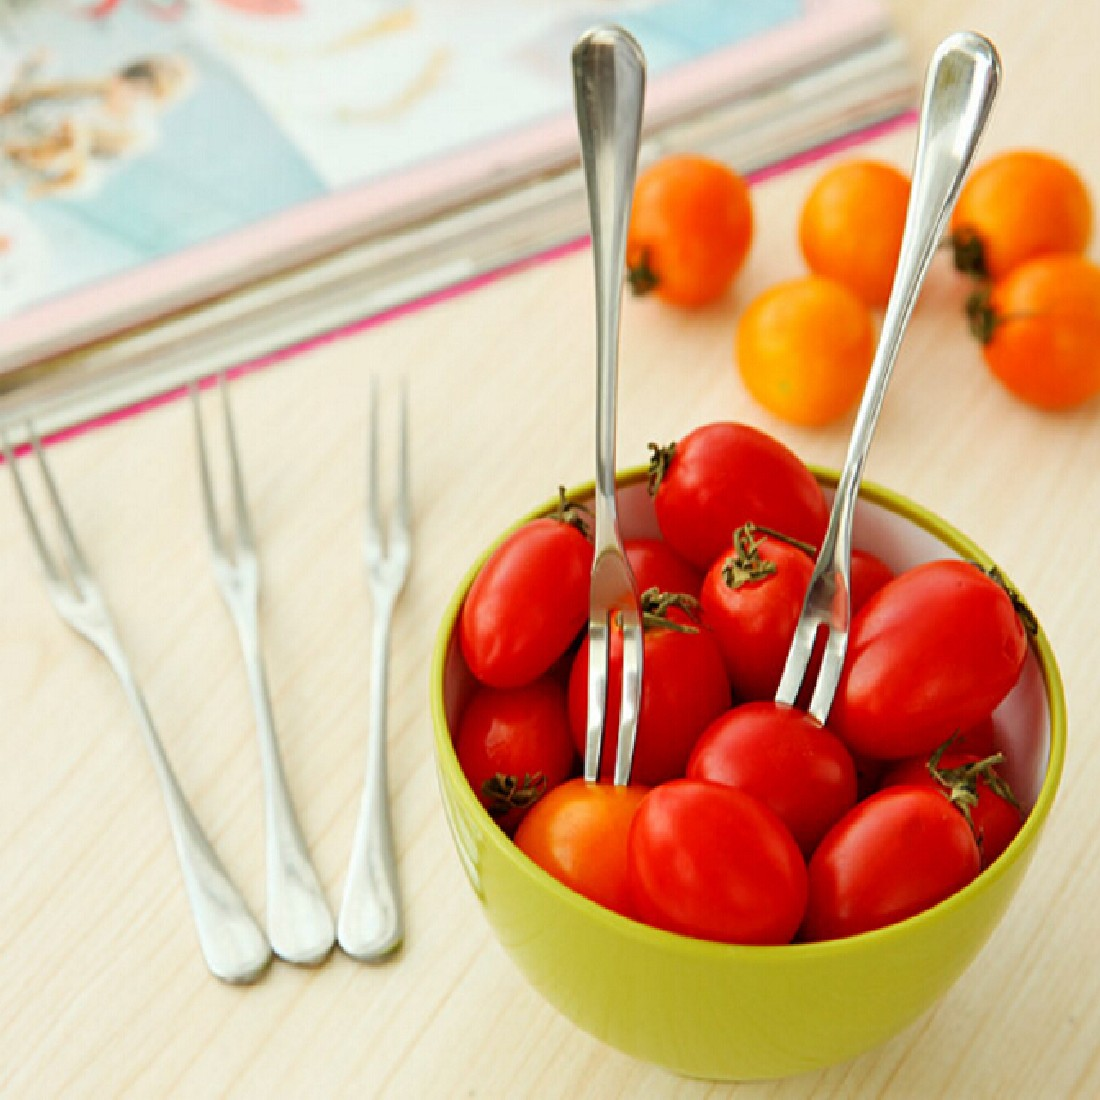 New High Quality Fashion Stainless Steel Fruit Fork Two Tooth Dessert Fork Eating Very Convenient For People